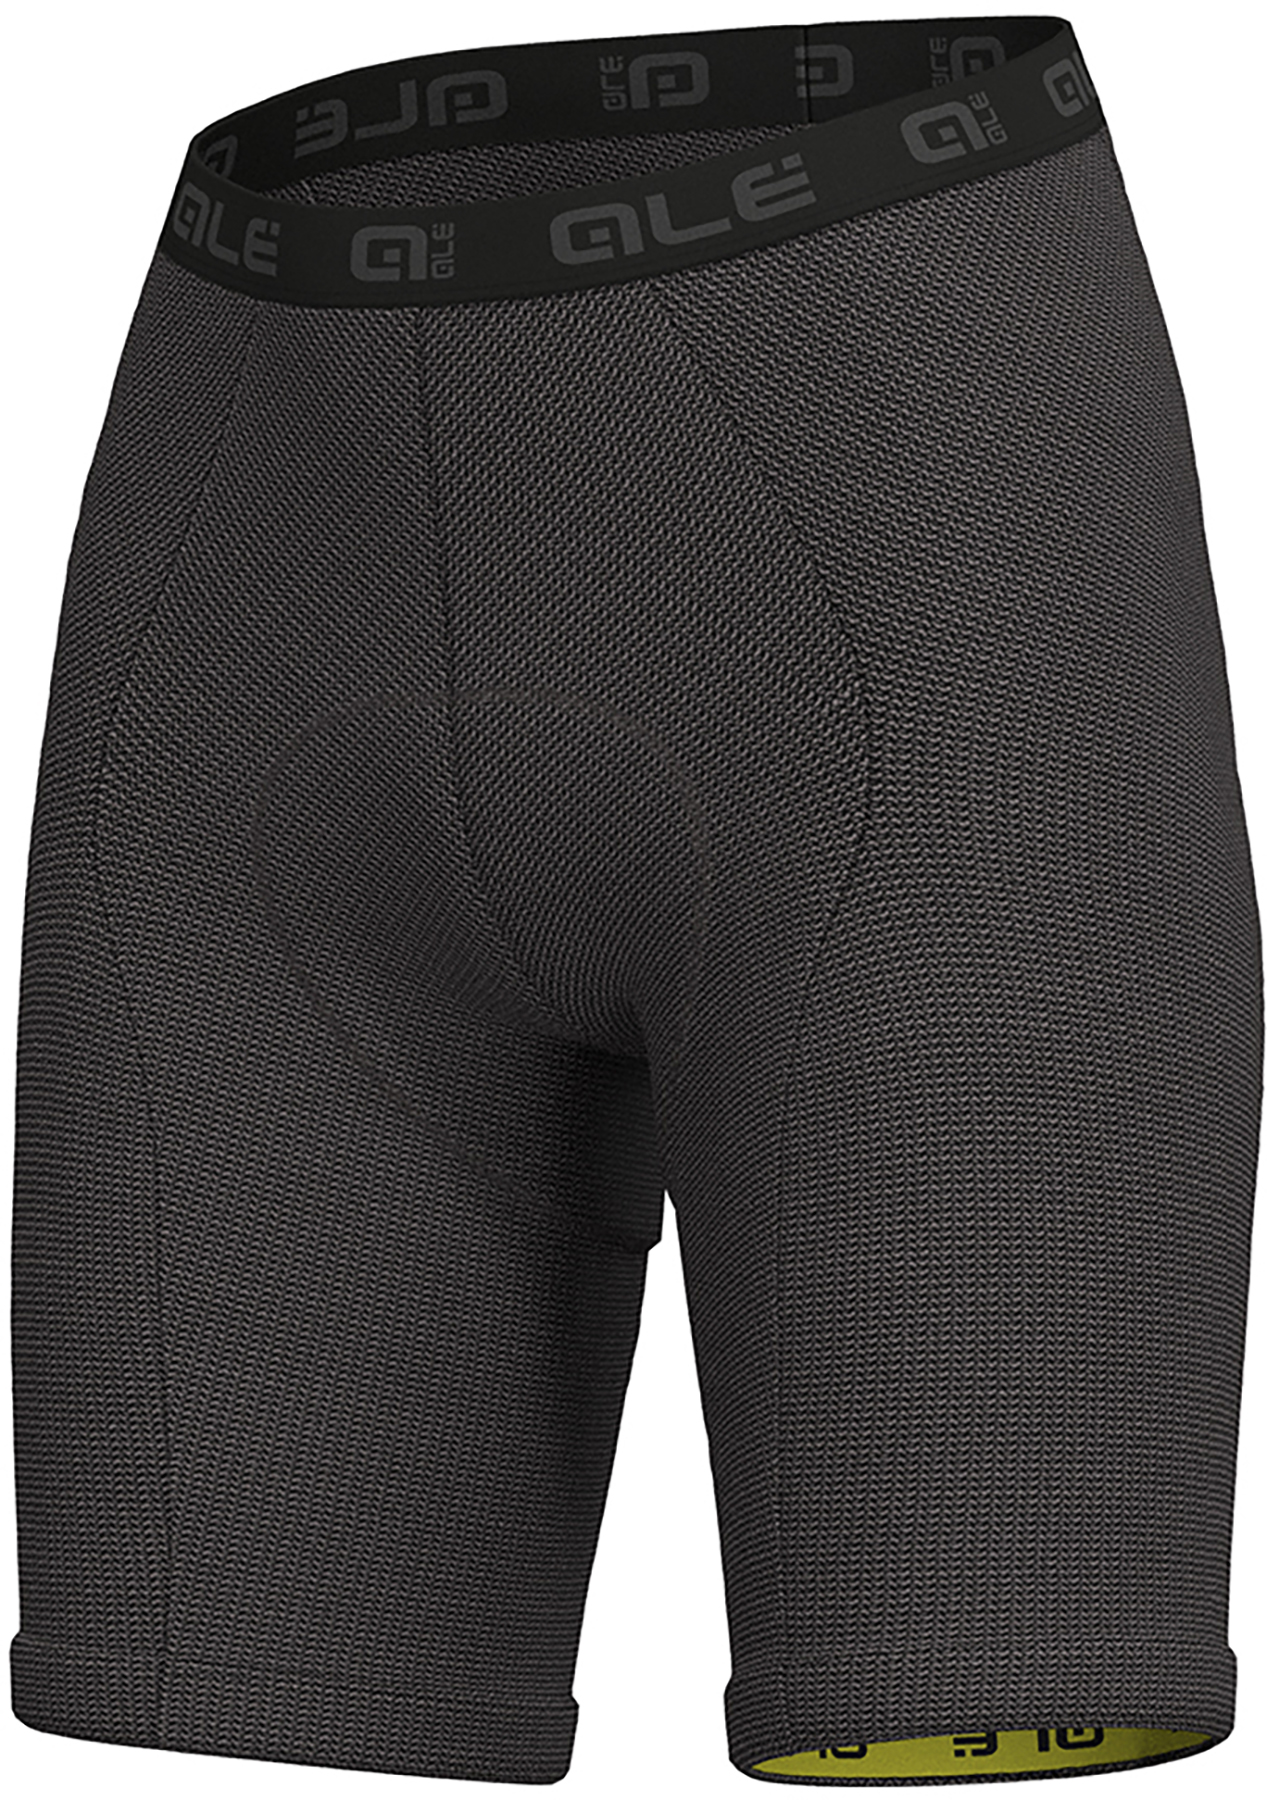 Alé Women's Enduro Padded Liner Shorts | Trousers